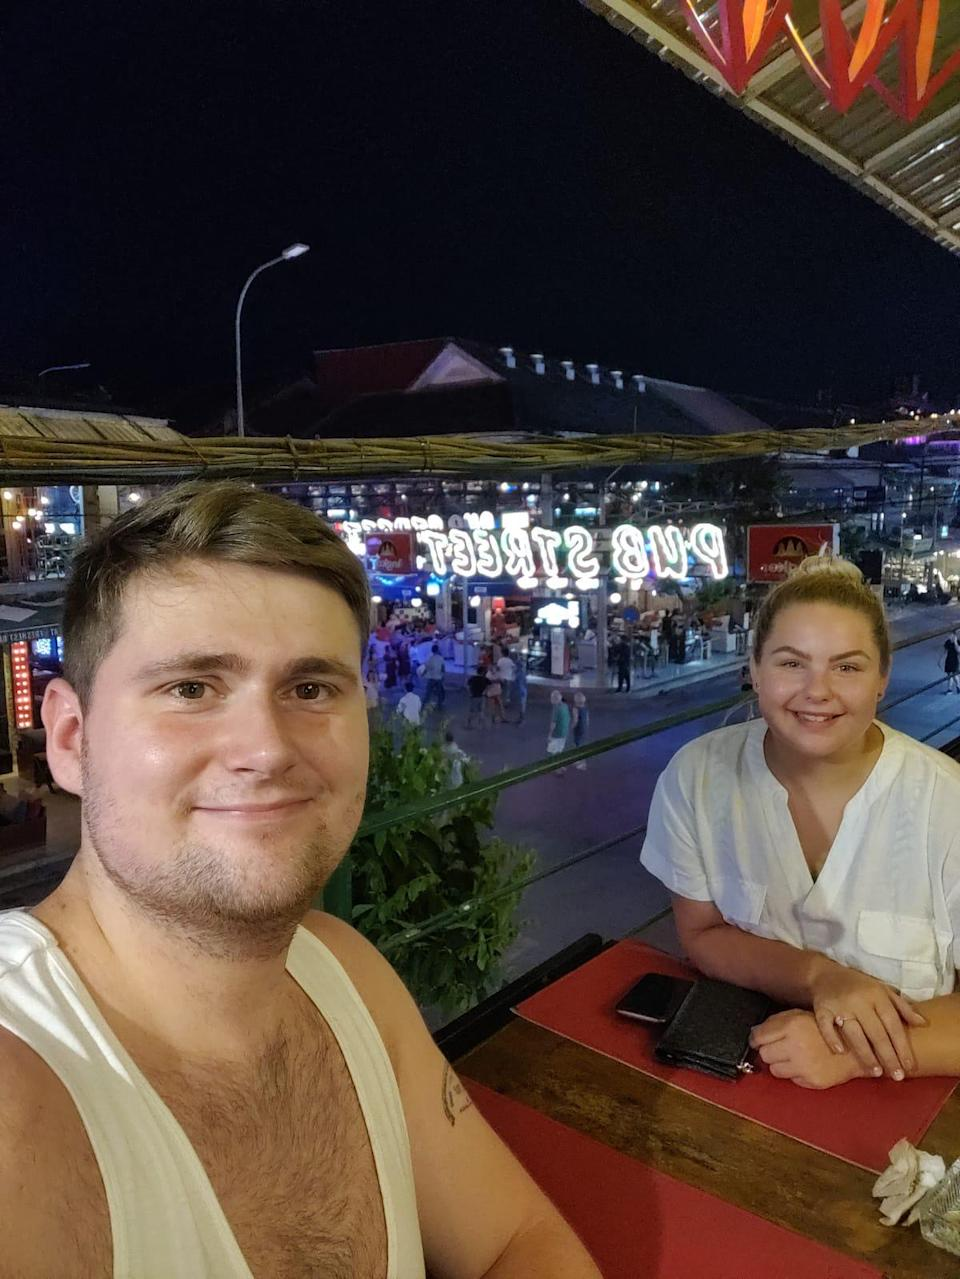 Chloe Sloggett and her fiance Toby Hastie, from North London, returned to the UK from Cambodia on Saturday (Chloe Sloggett handout/PA)